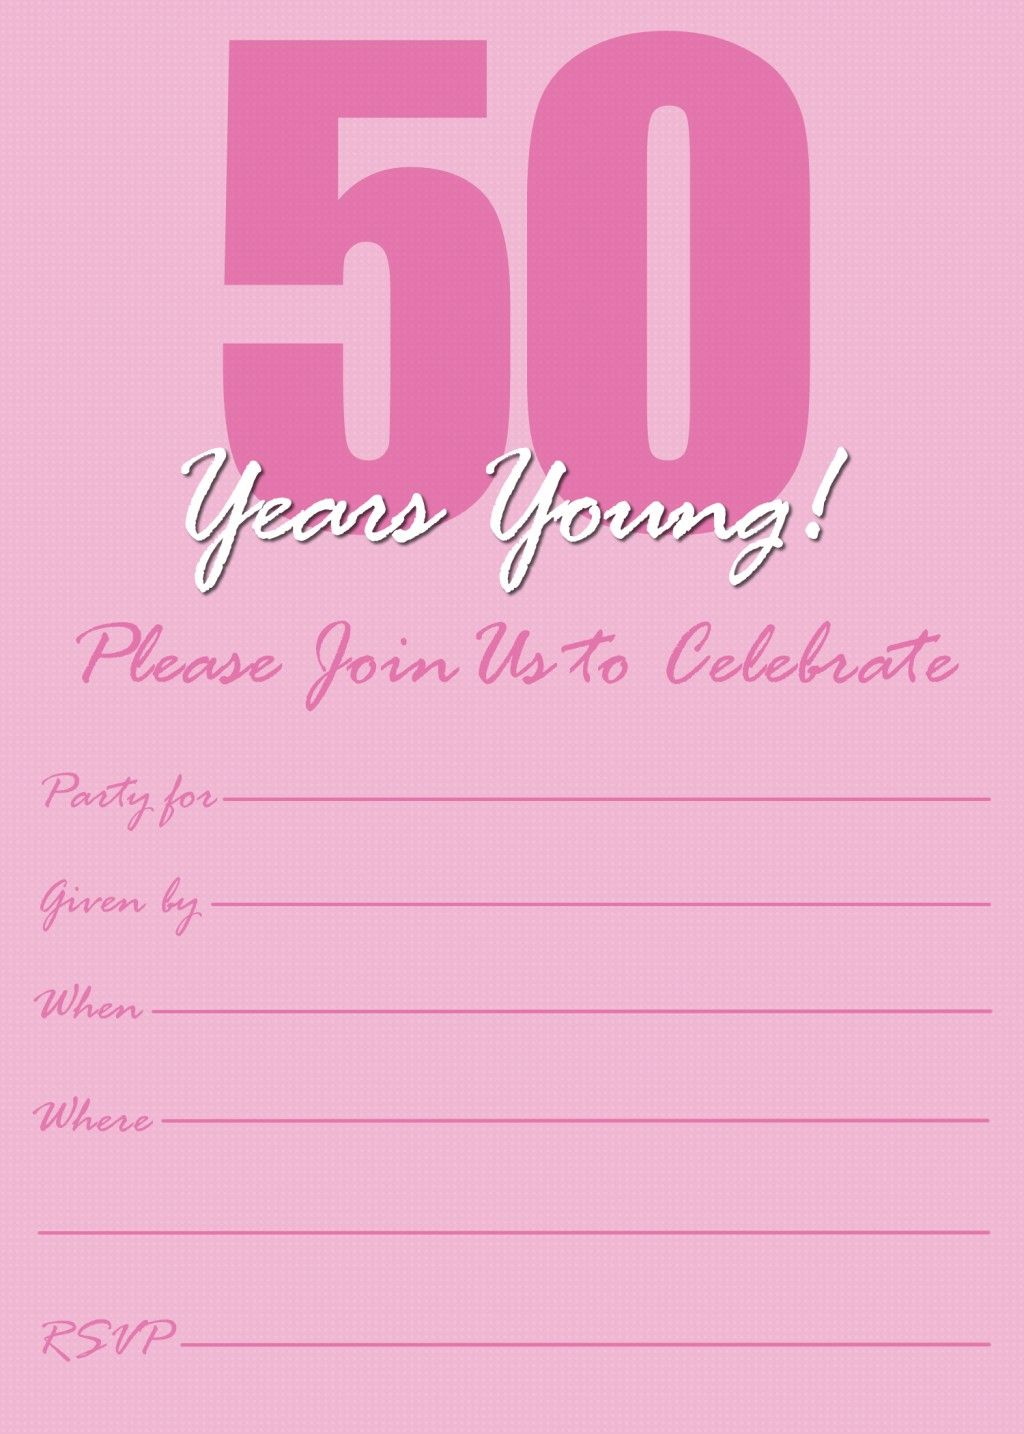 Free Printable 50th Birthday Party Invitation Templates  Birthday Invite Templates Free To Download